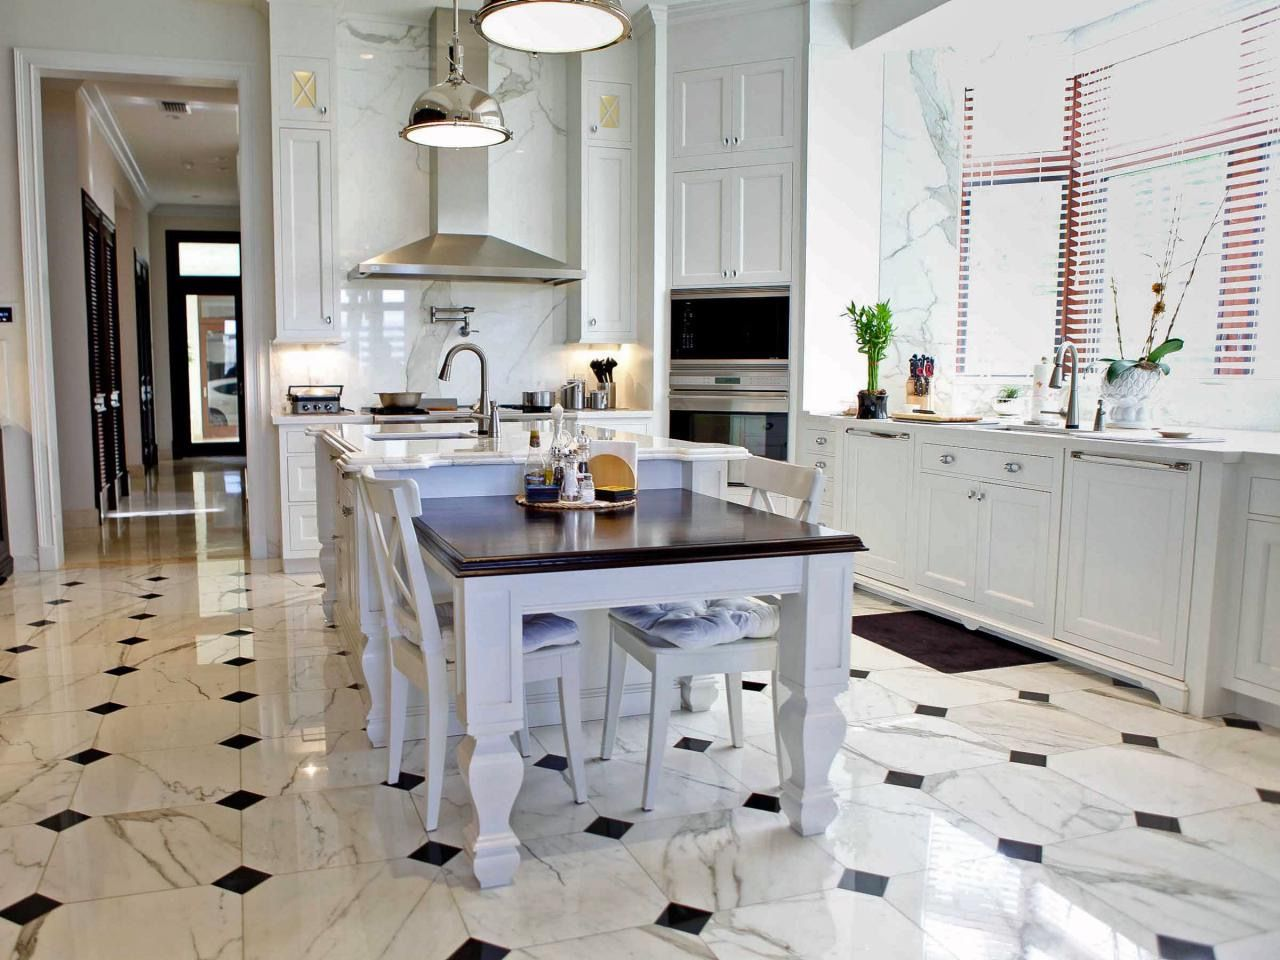 Black And White Ceramic Tile For Traditional Kitchen Flooring Unique Black And White Tile Designs For Kitchens 2018